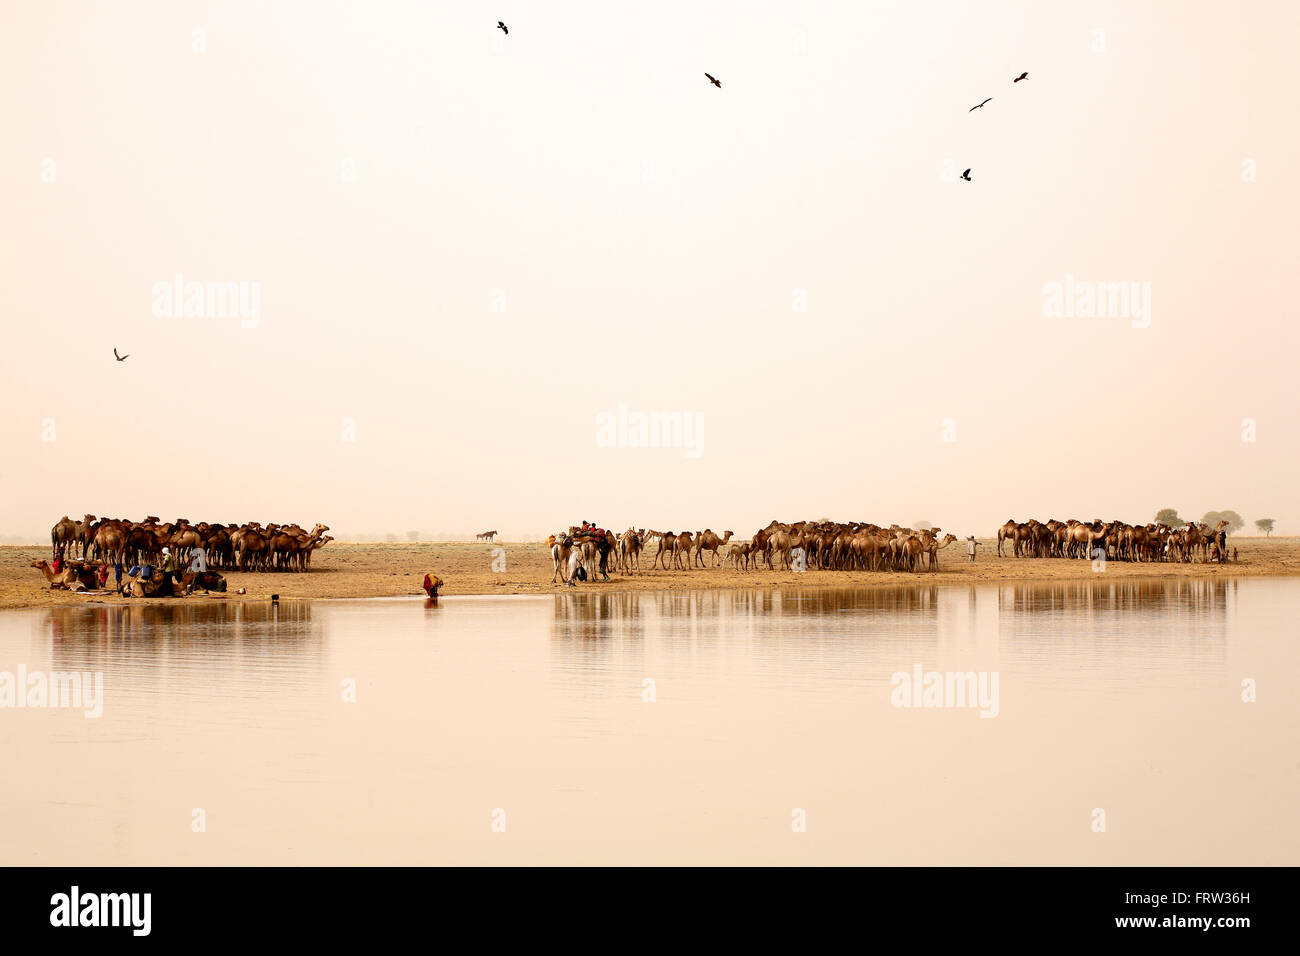 Chad, Nomads with their herds of camels on lake Gara - Stock Image